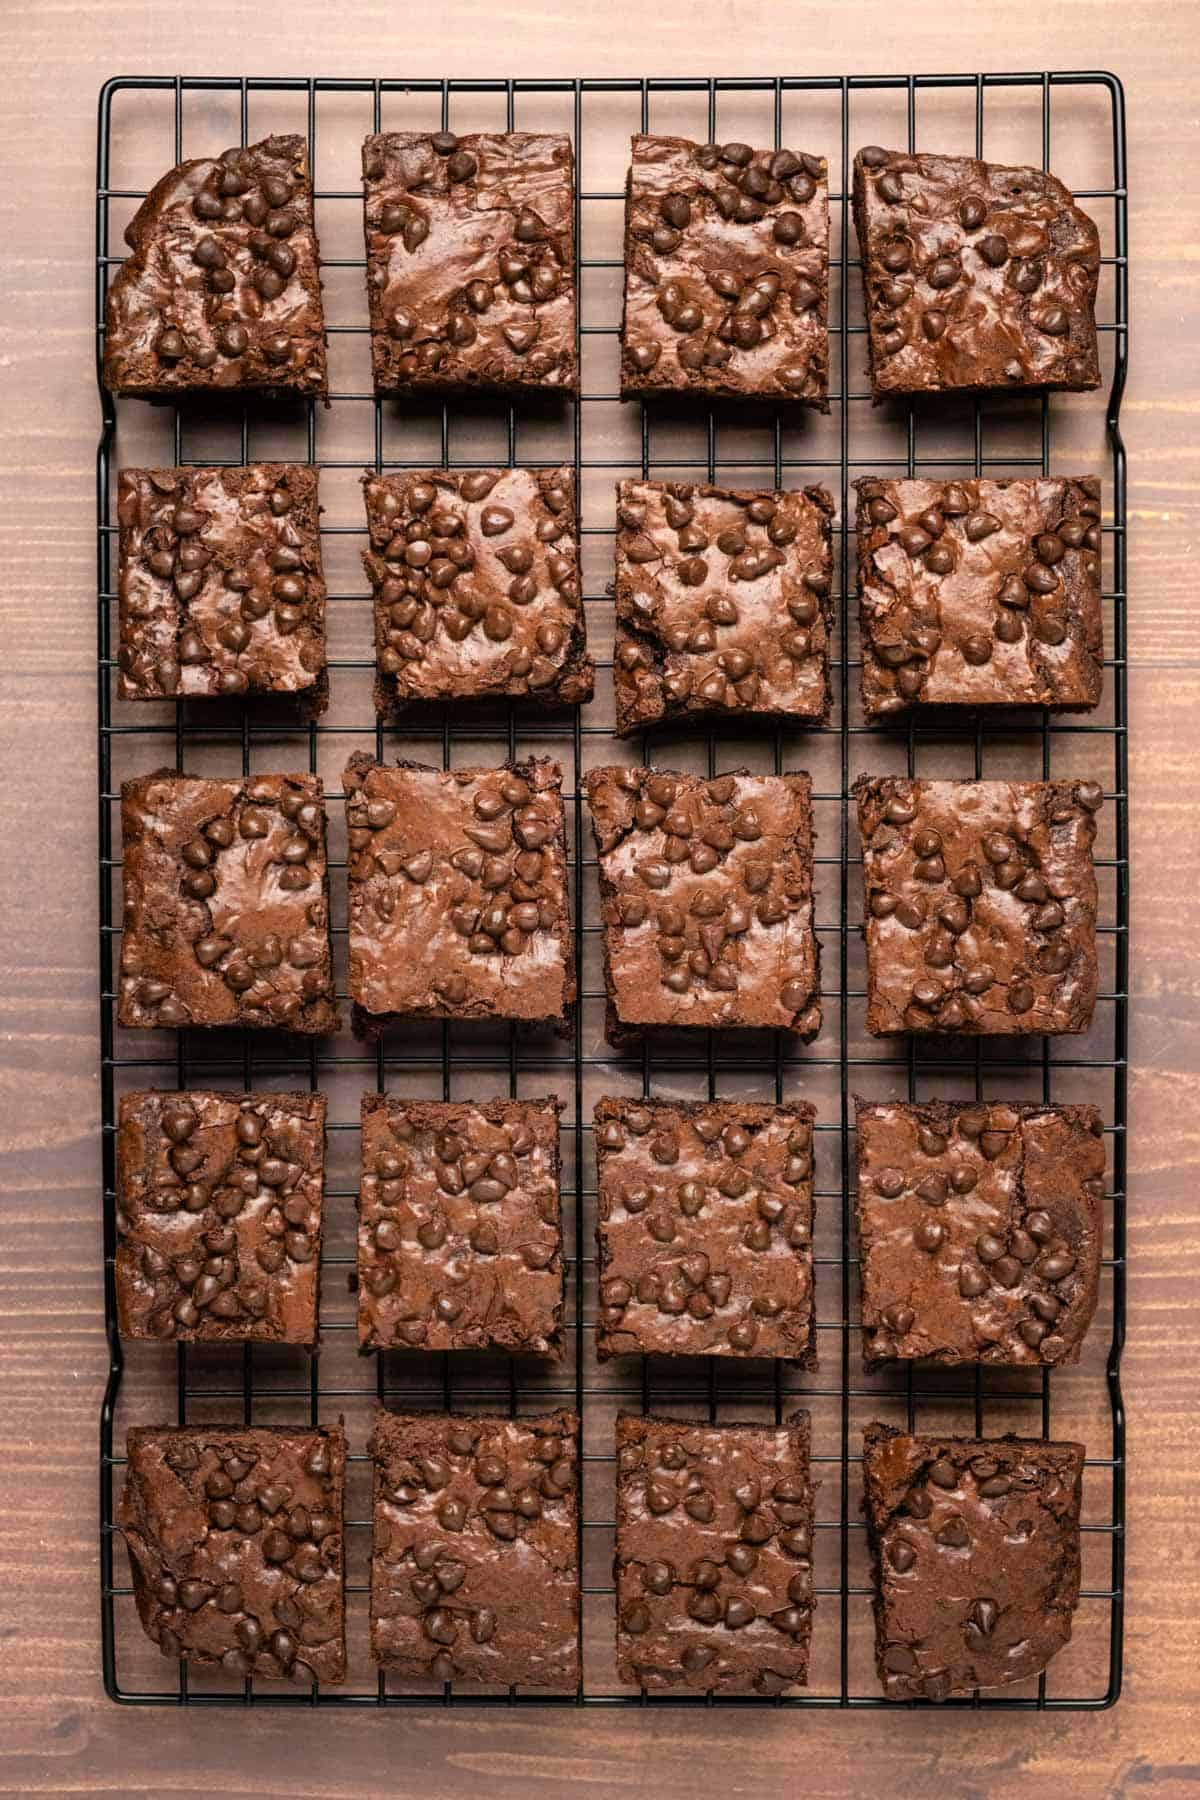 Brownies cut into squares on a wire cooling rack.